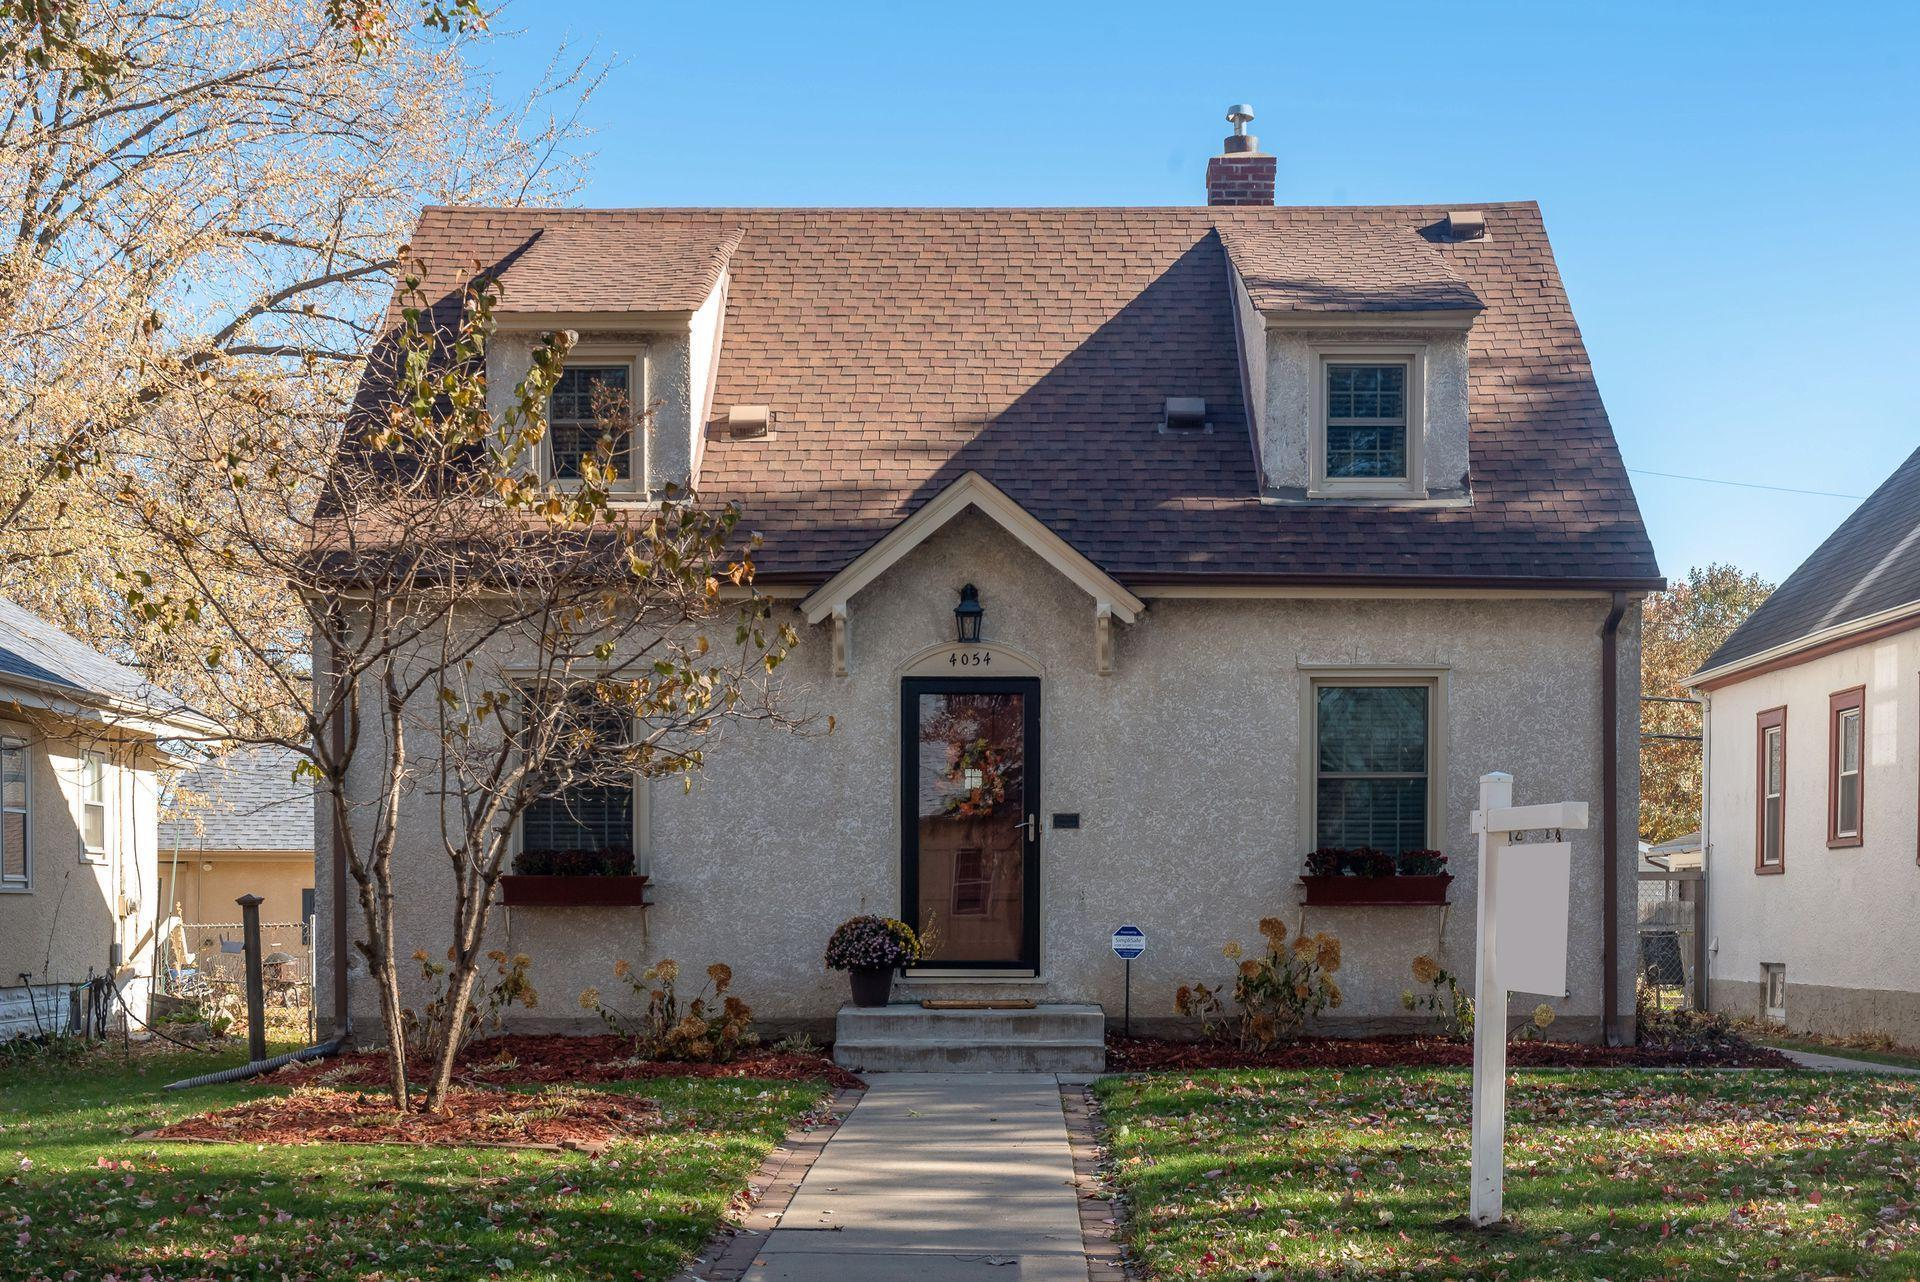 4054 Queen Avenue N Property Photo - Minneapolis, MN real estate listing